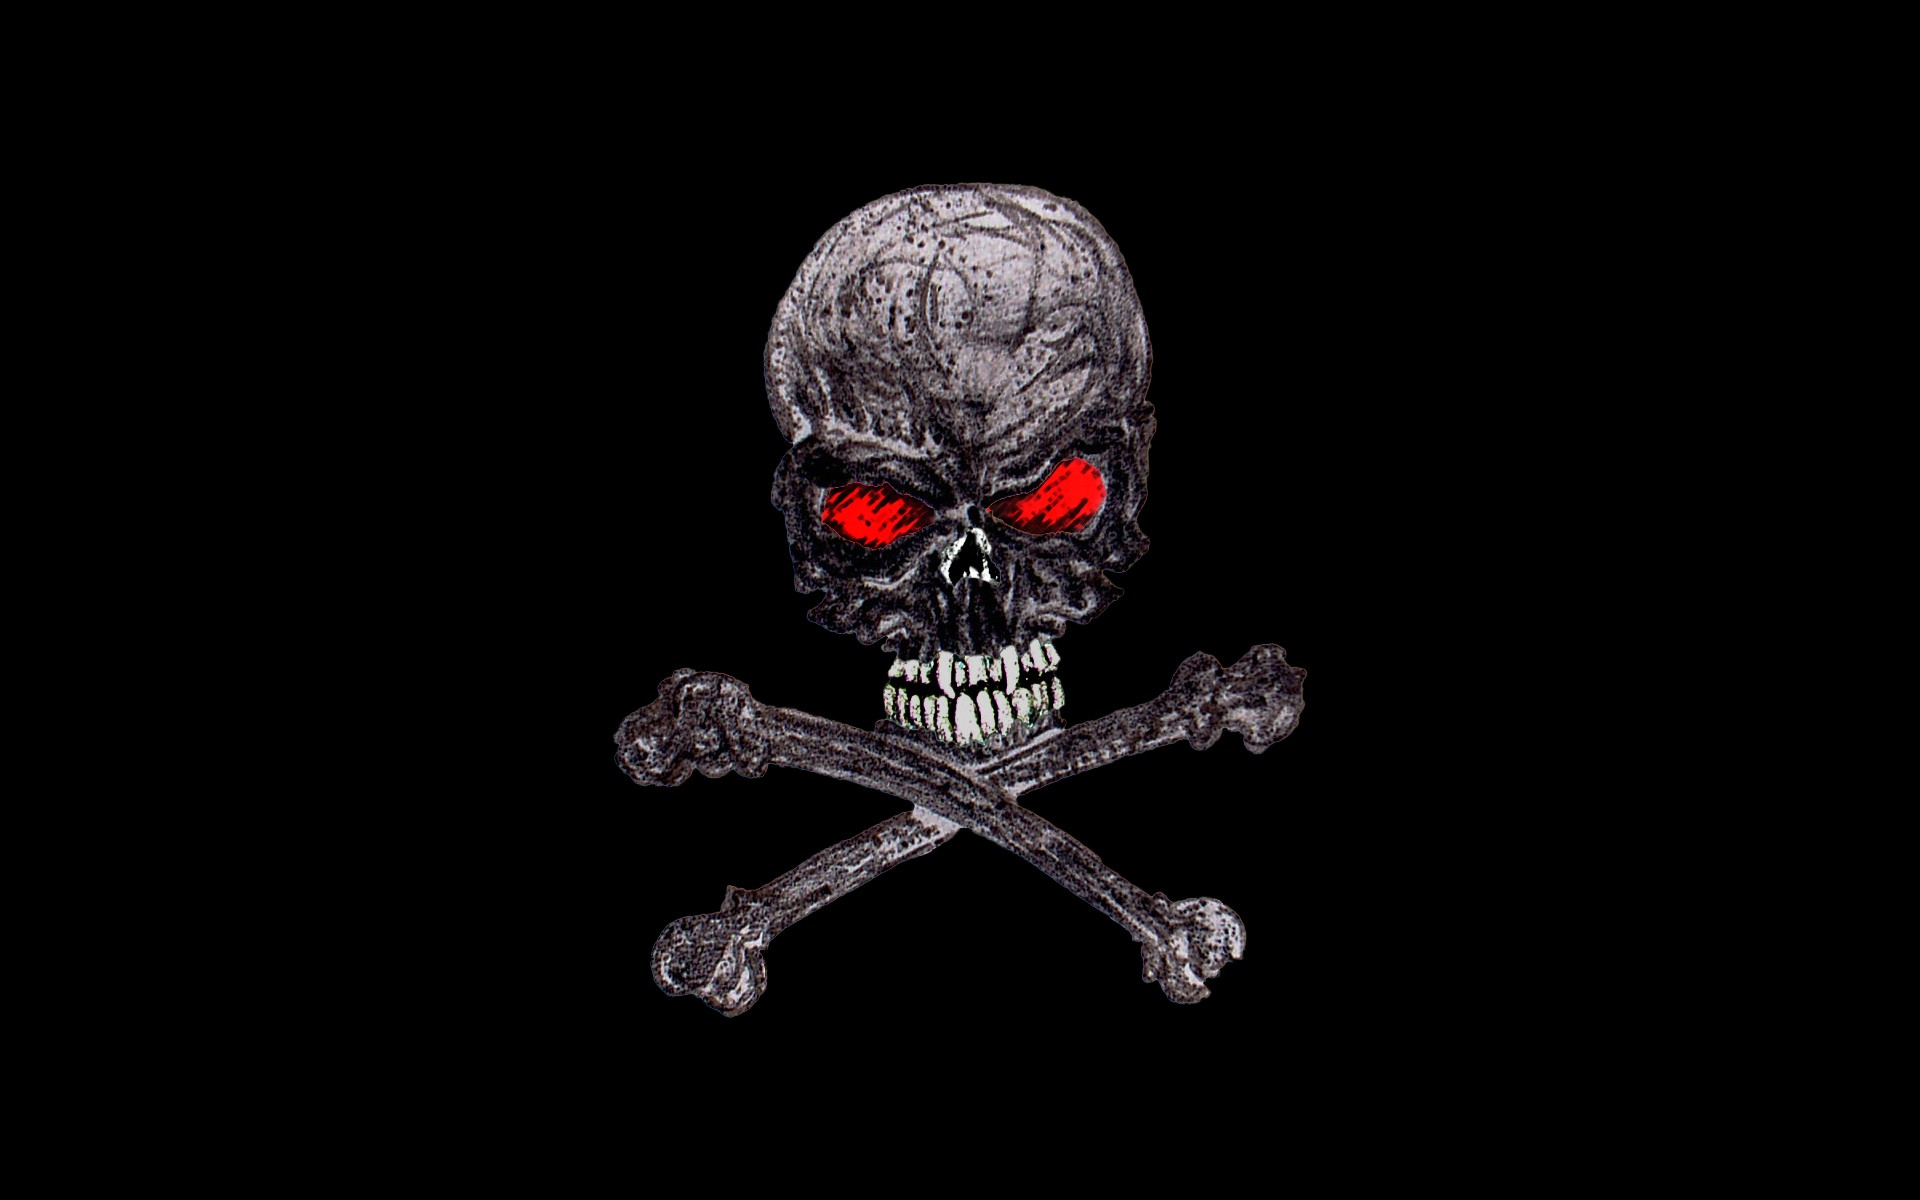 Skulls Wallpaper 1 Download Free Awesome High Resolution